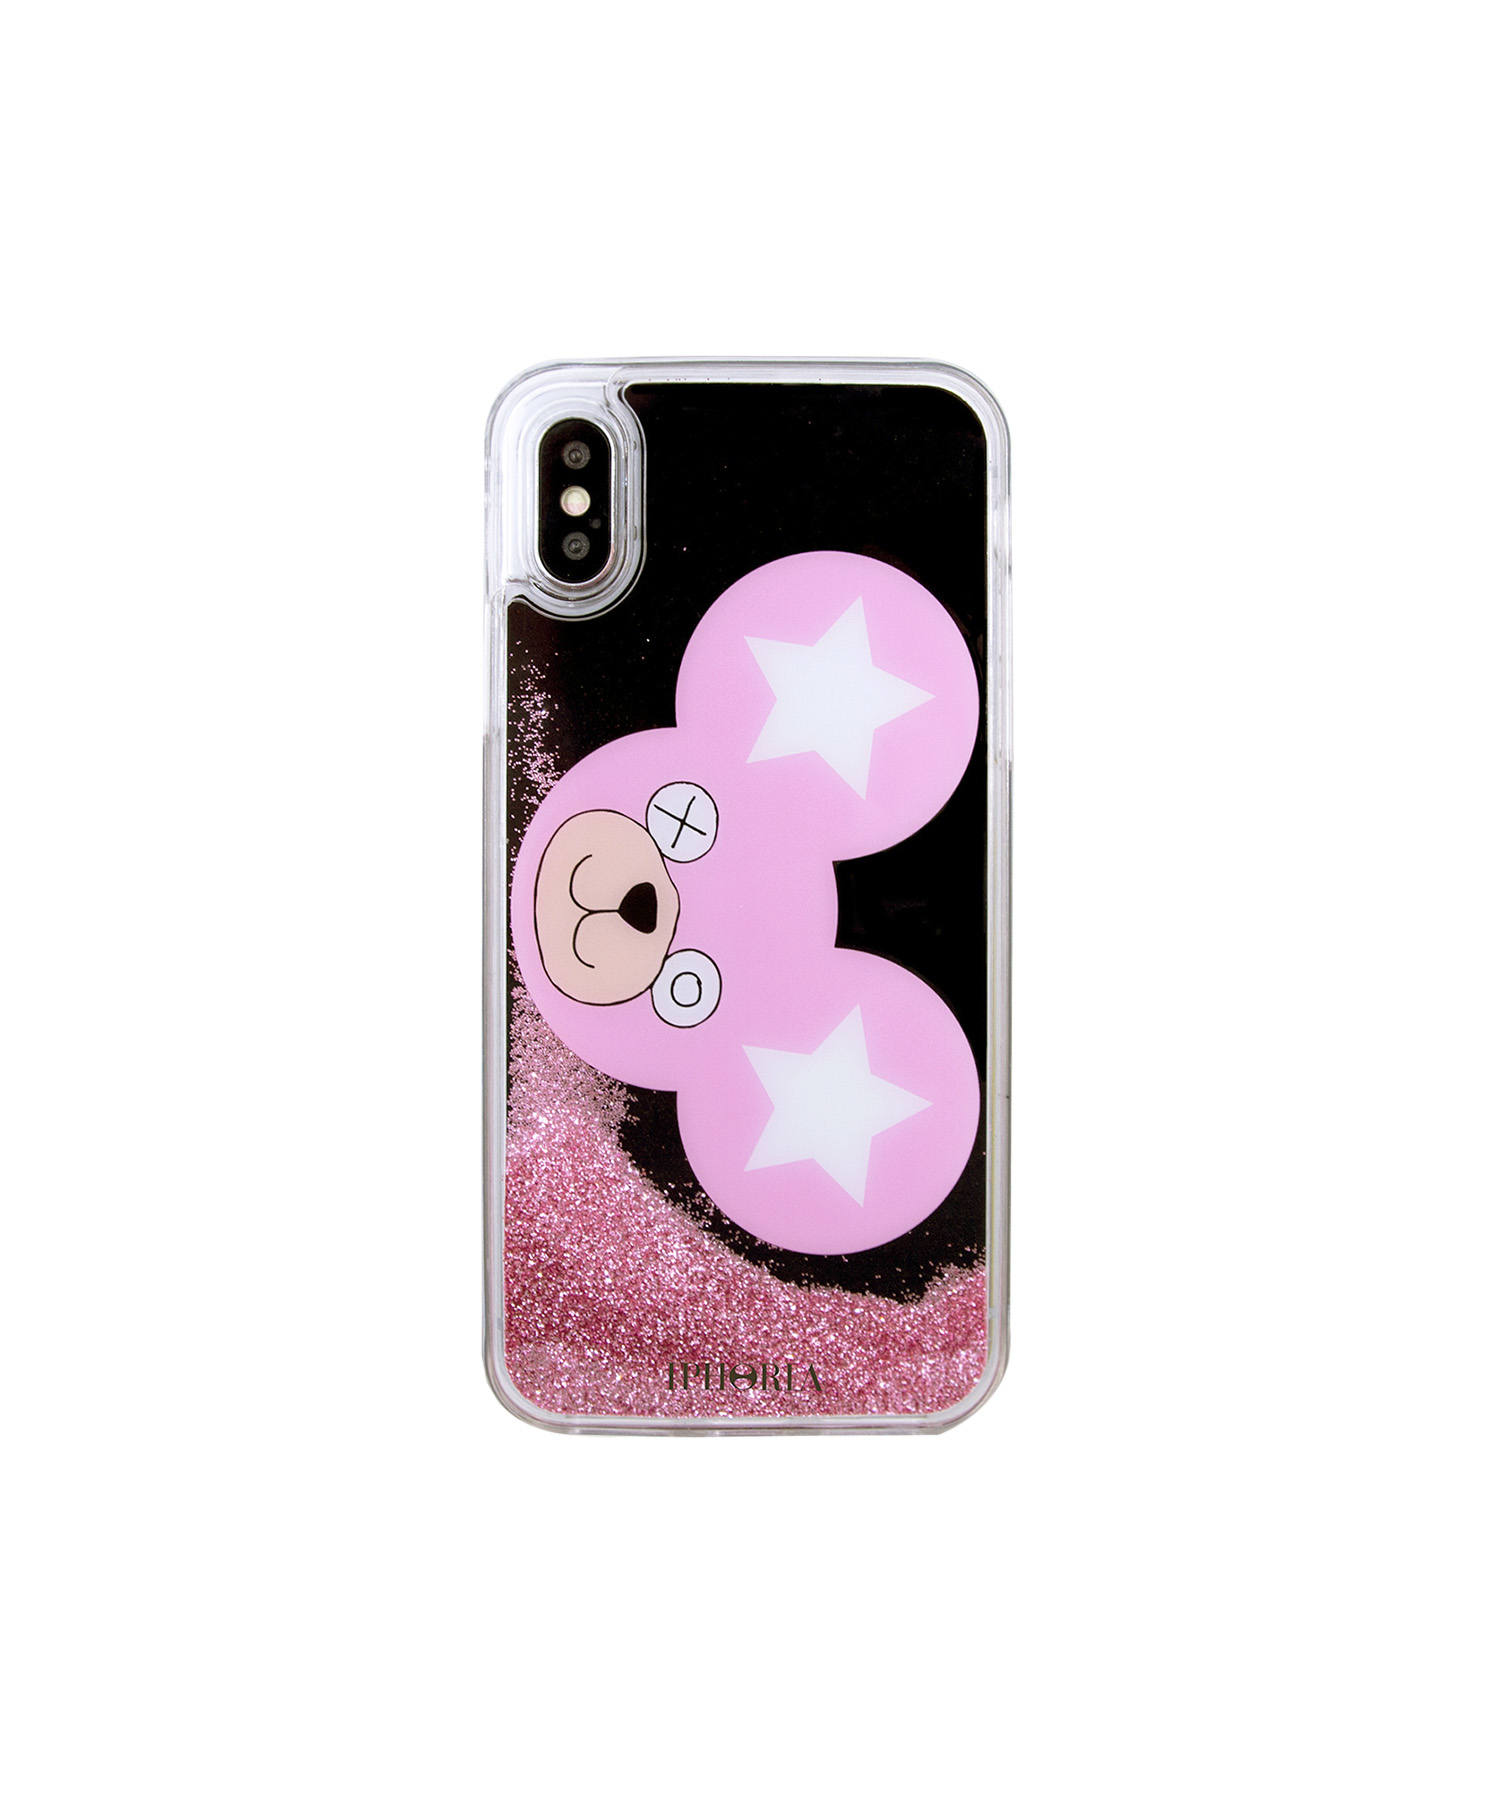 Liquid Case for Apple iPhone X/XS - Pink Teddy Is Power